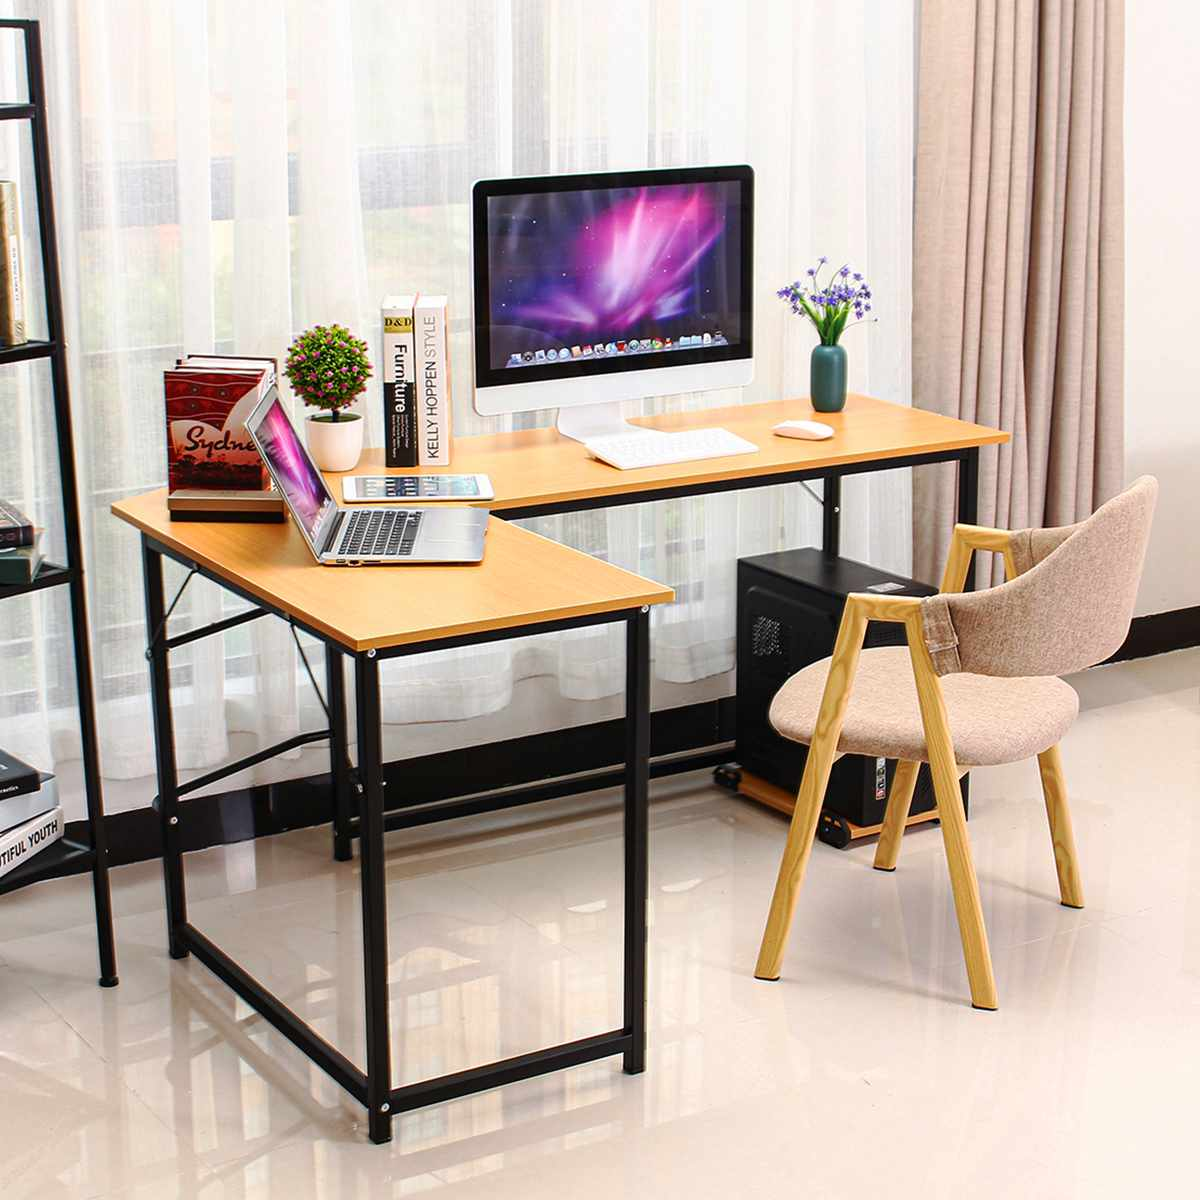 Wooden Office Computer Writing Desk Home Gaming PC Furnitur L-Shape Corner Study Computer Table Laptop Desk Laptop Stand